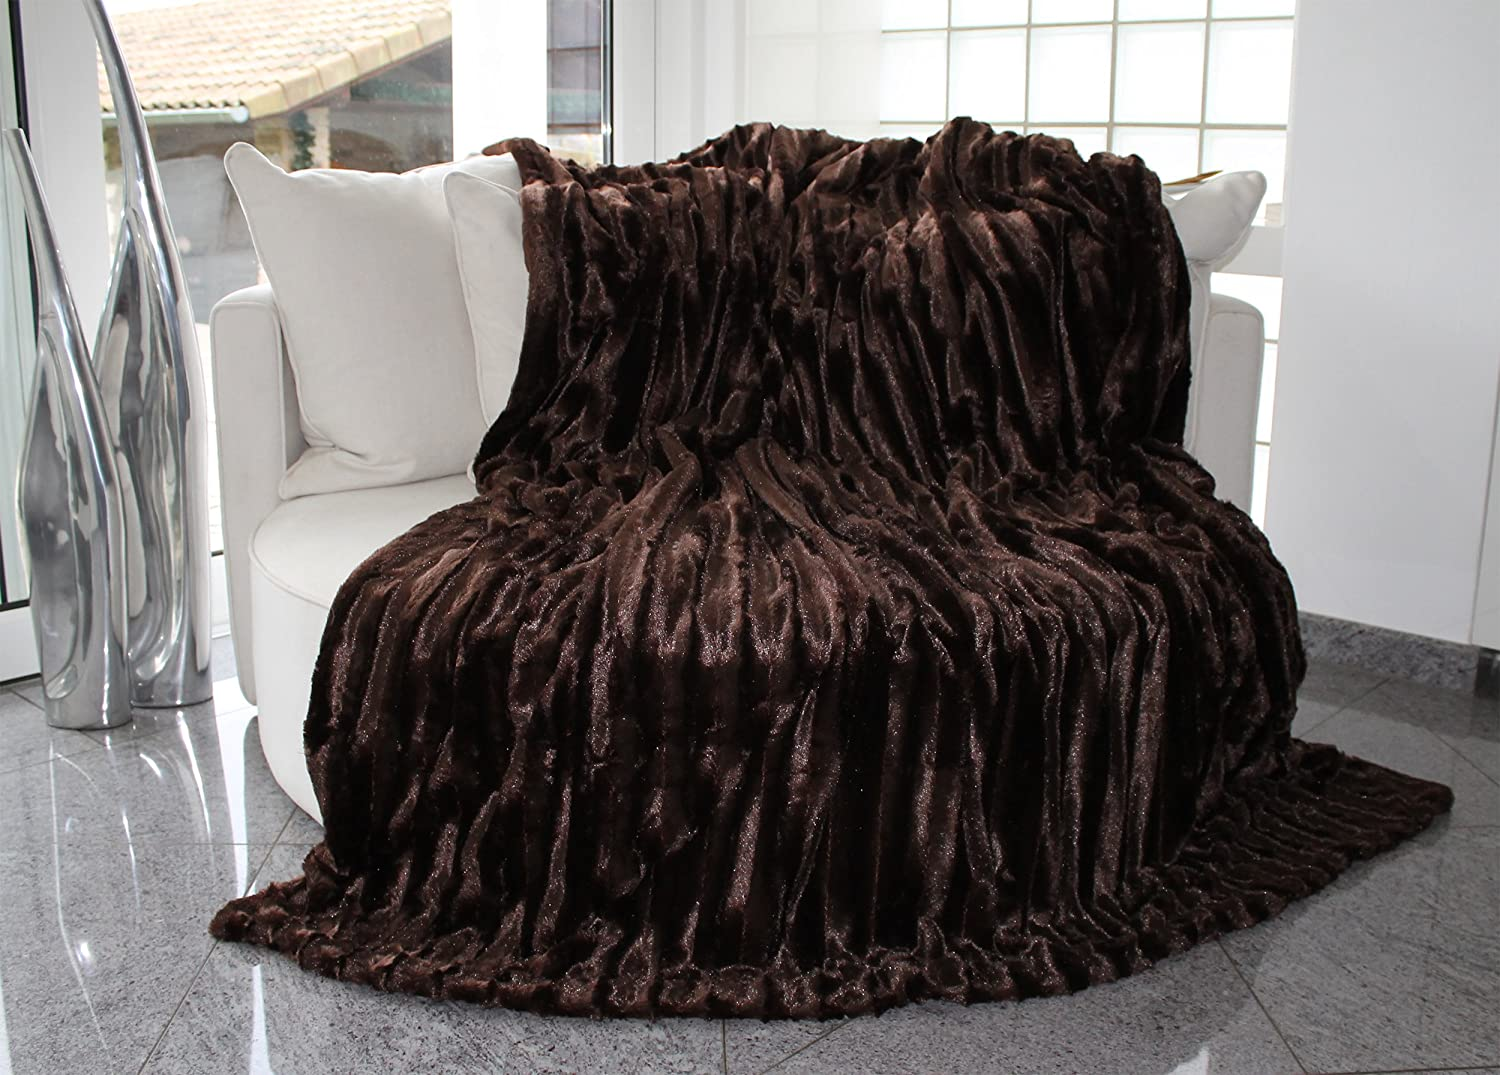 Brandsseller - Luxury Bed Blanket Throw Throwover Bedspread Bedcover - Faux Fur optics on both sides - Size: 150x200 cm - color: Black